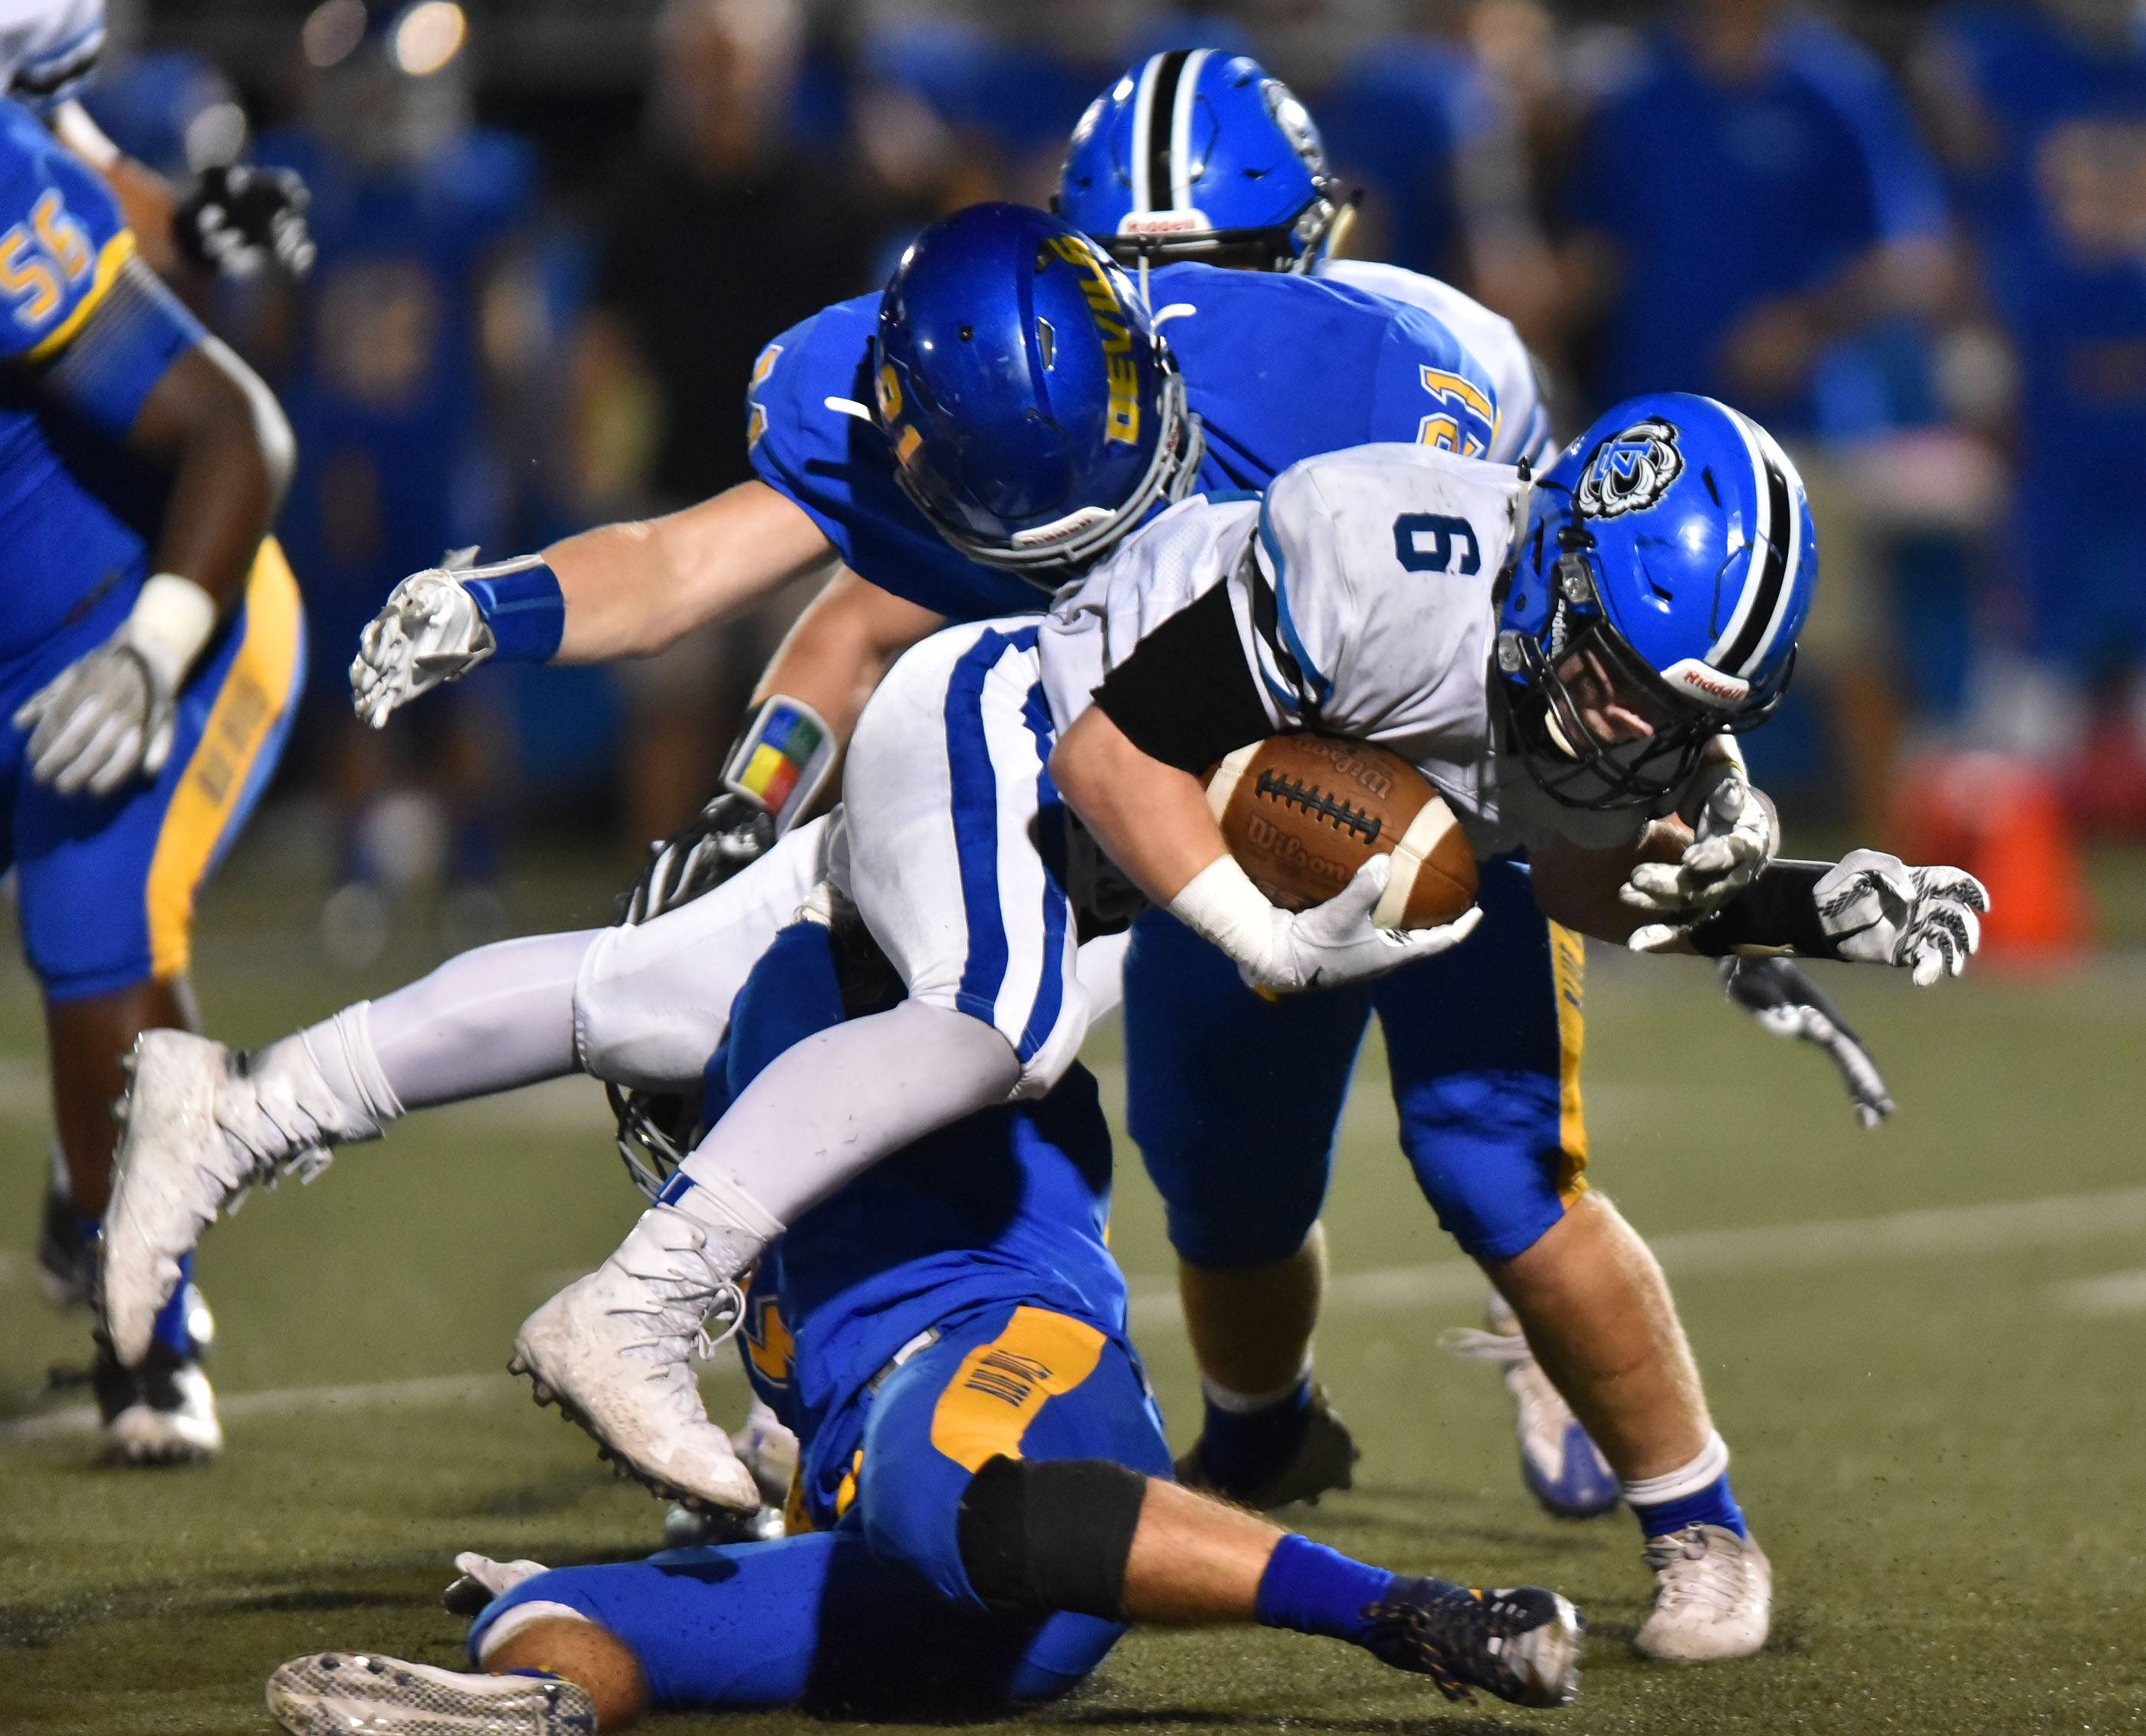 Lake Zurich's Joey Stutzman is tripped up by Warren's Caden Fox and Jared Keeter Friday in Gurnee.